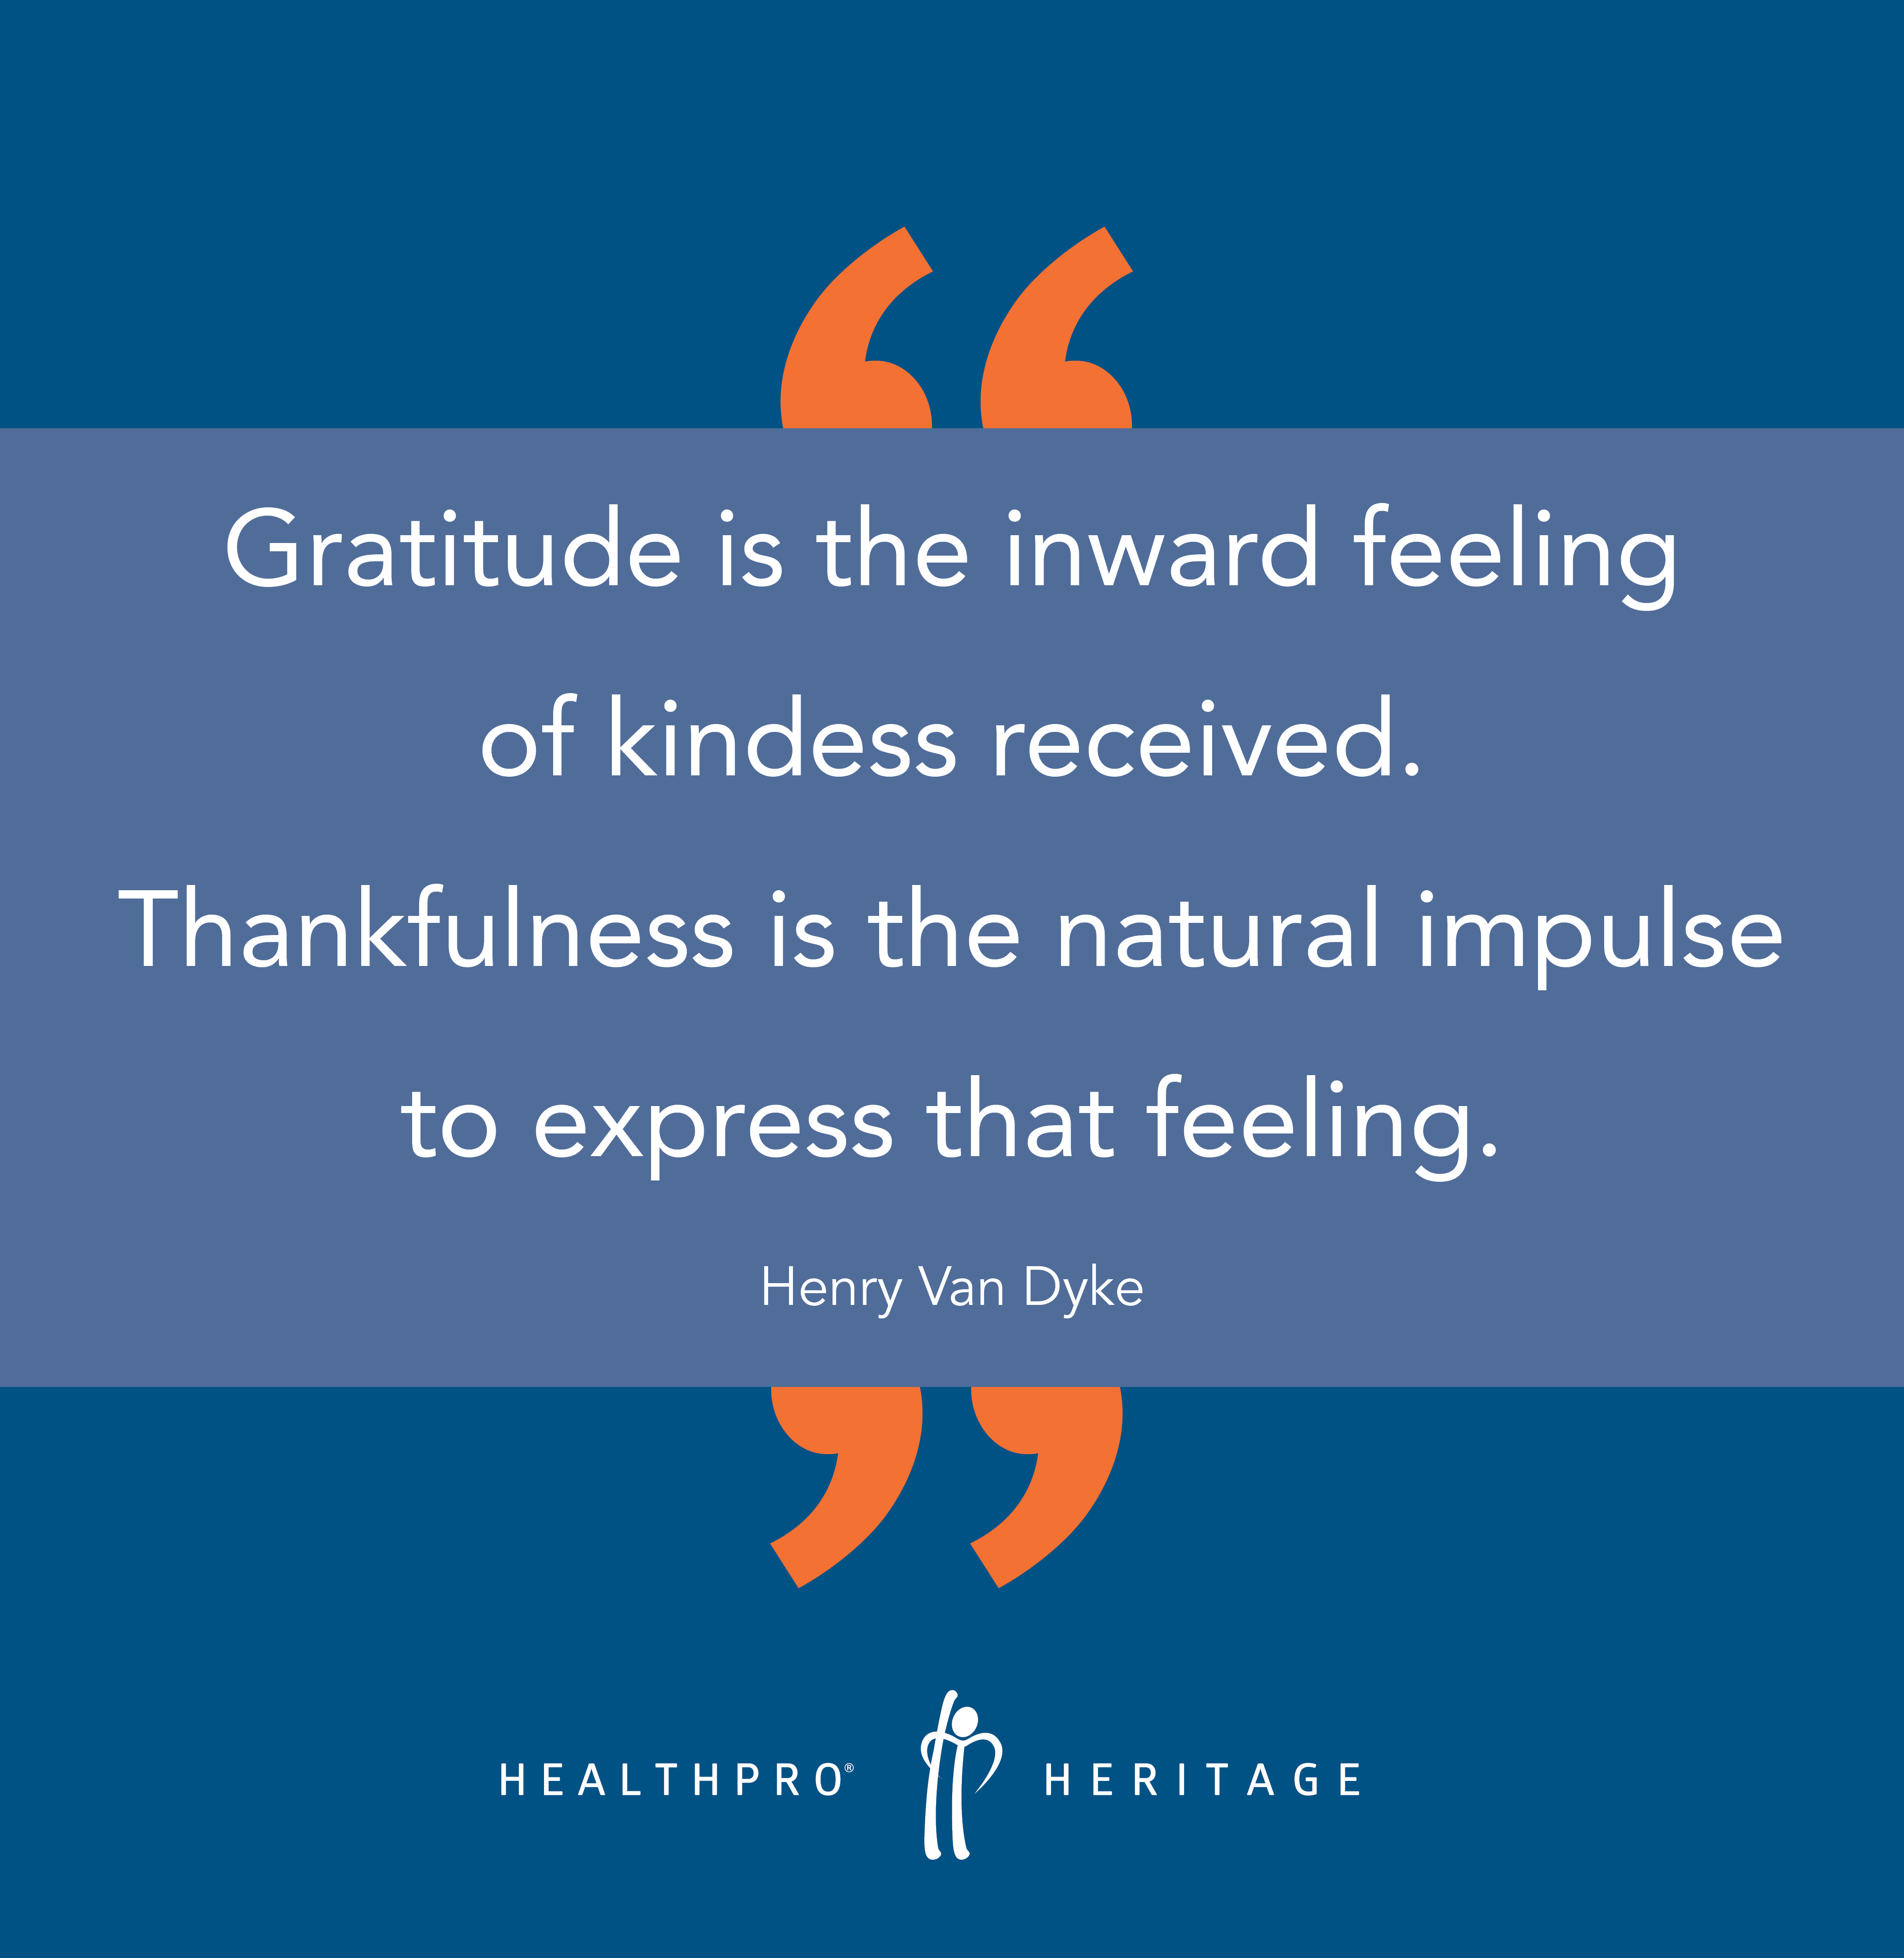 Gratitude is the inward feeling of kindness received. Thankfulness is the natural impulse to express that feeling. - Henry Van Dyke